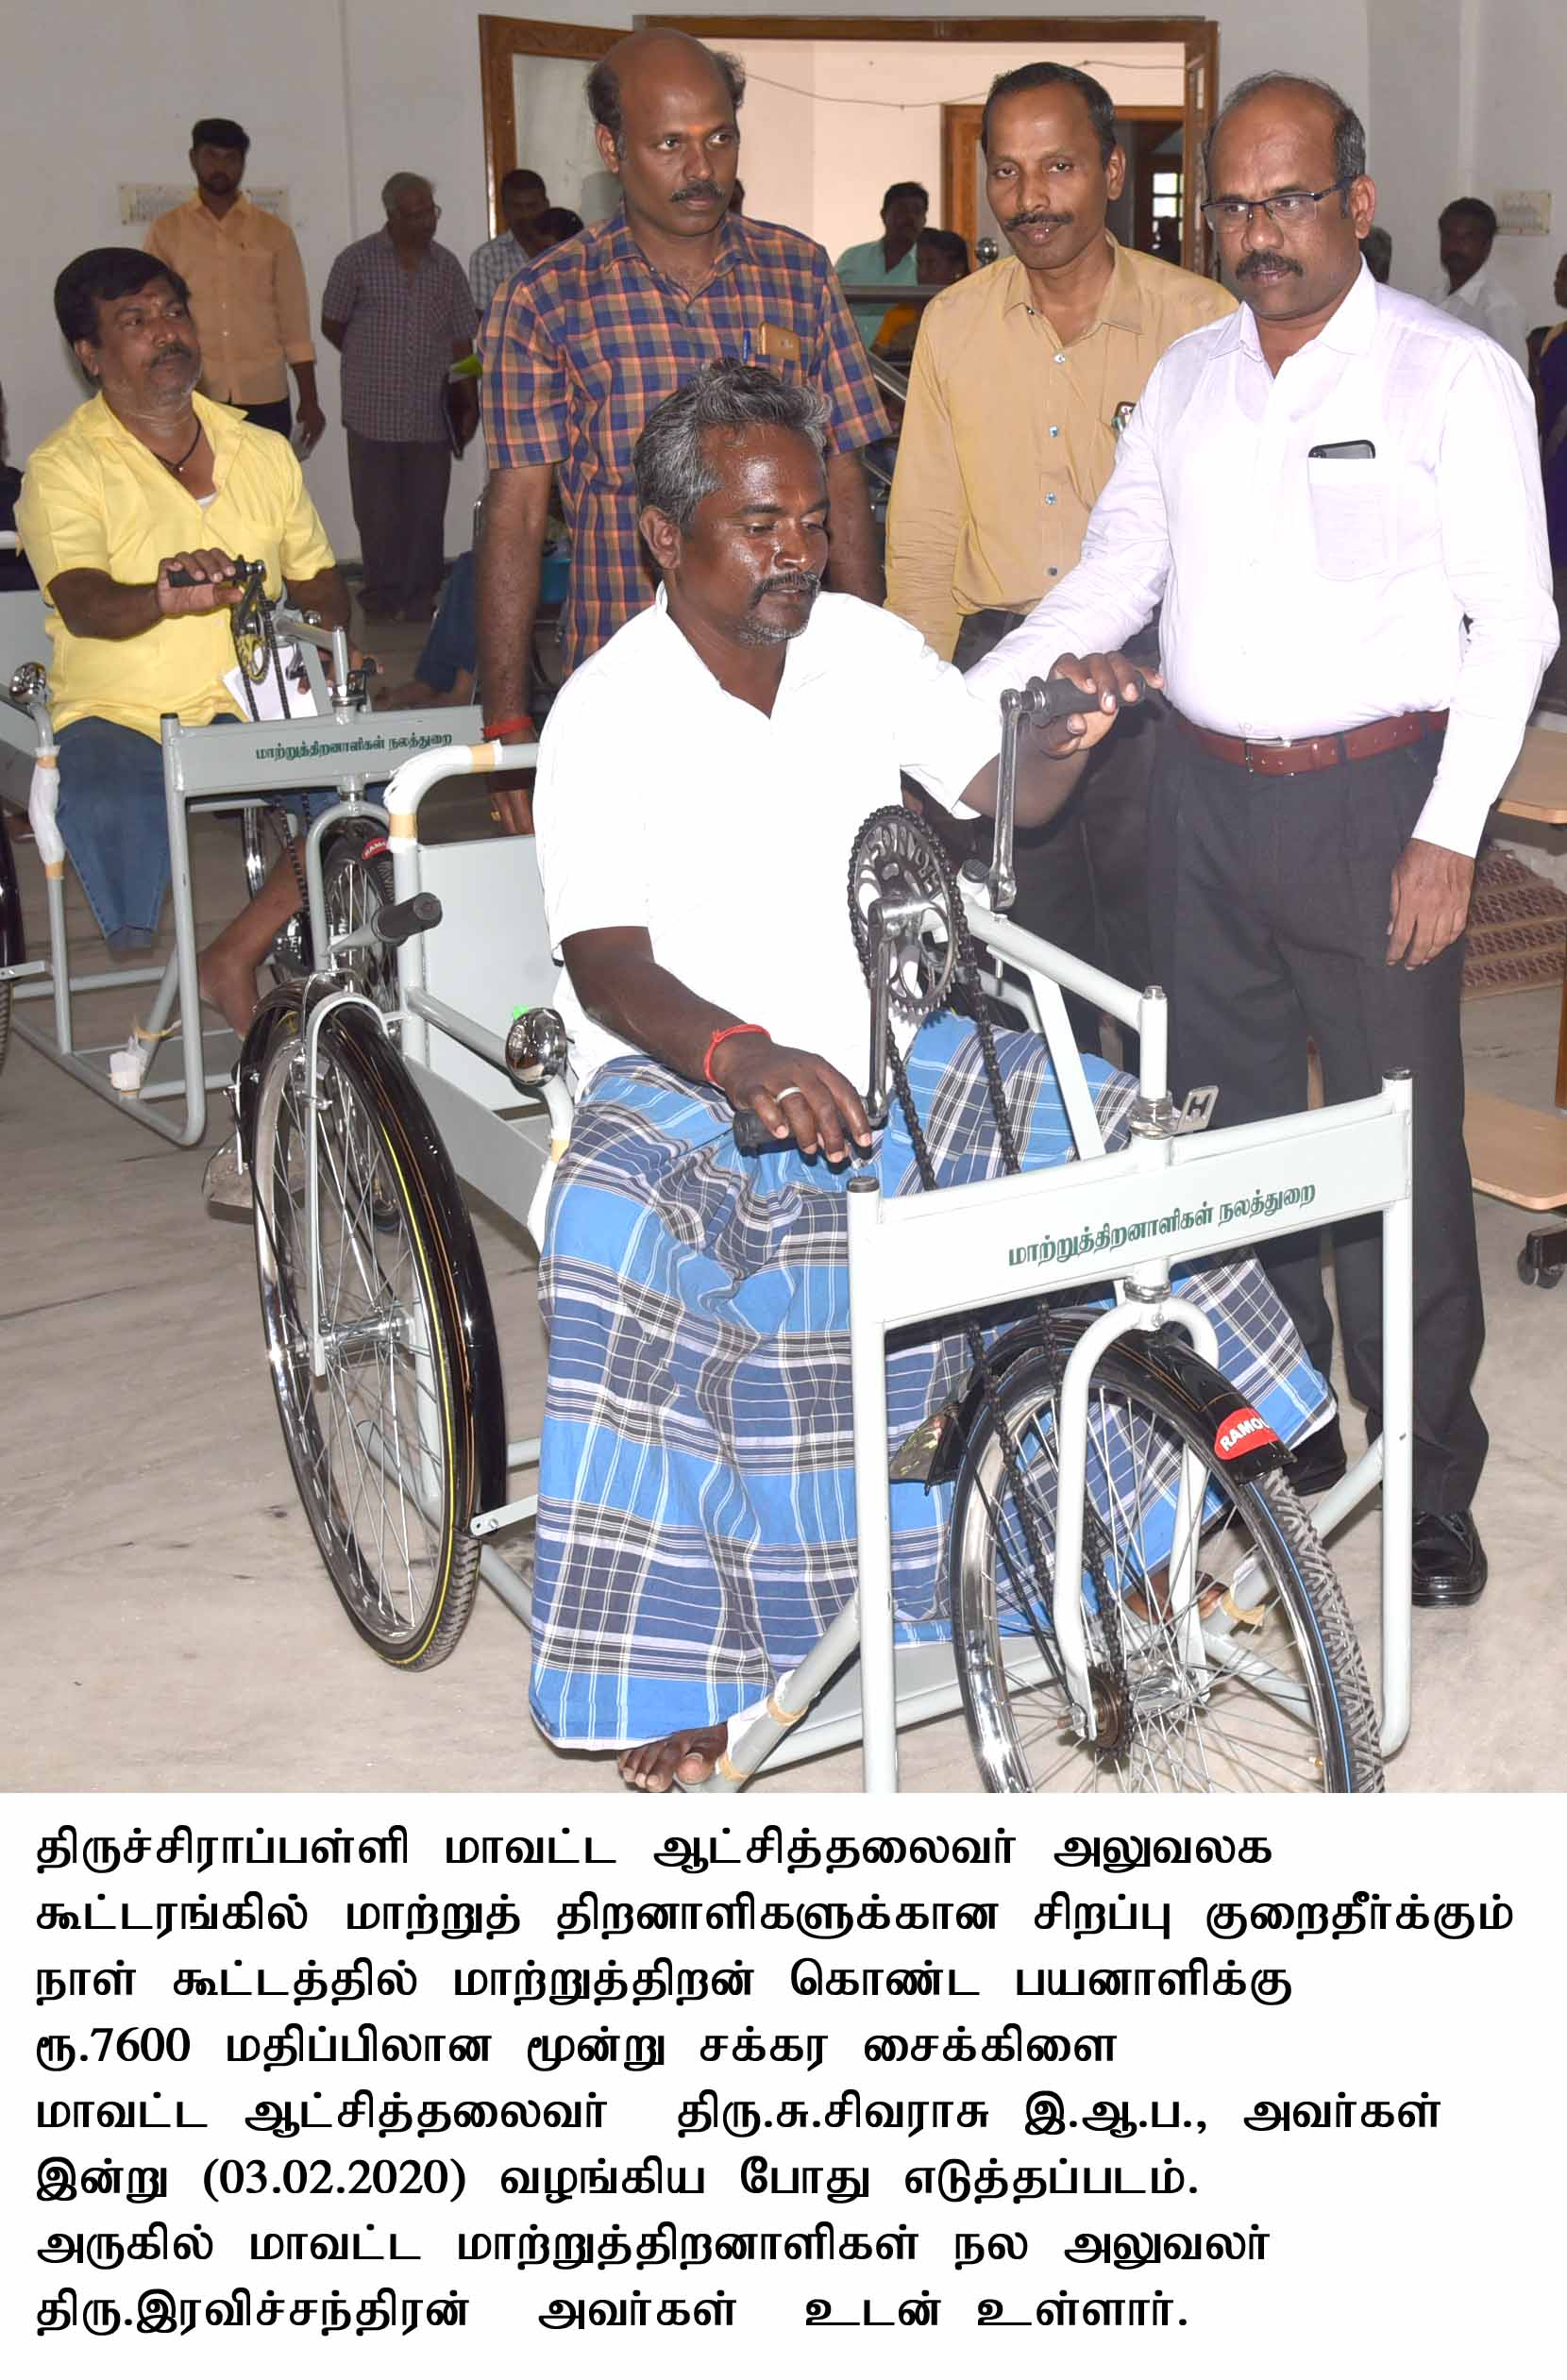 Spl. Grievance Day for Differently abled Persons held on 03-02-2020